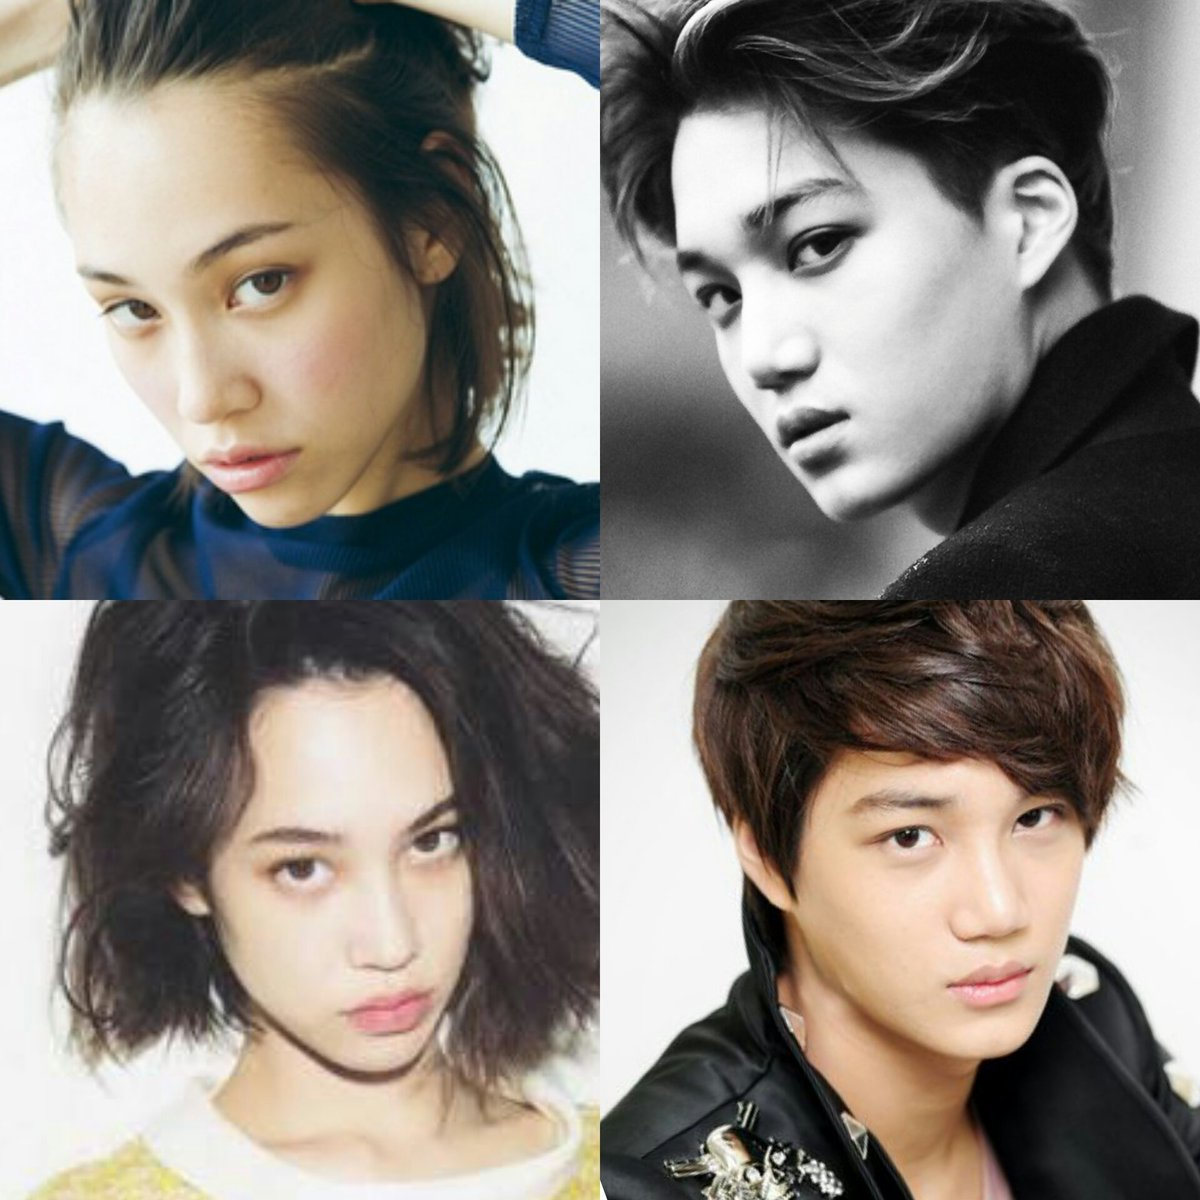 What are some idols of the opposite gender that look alike ...